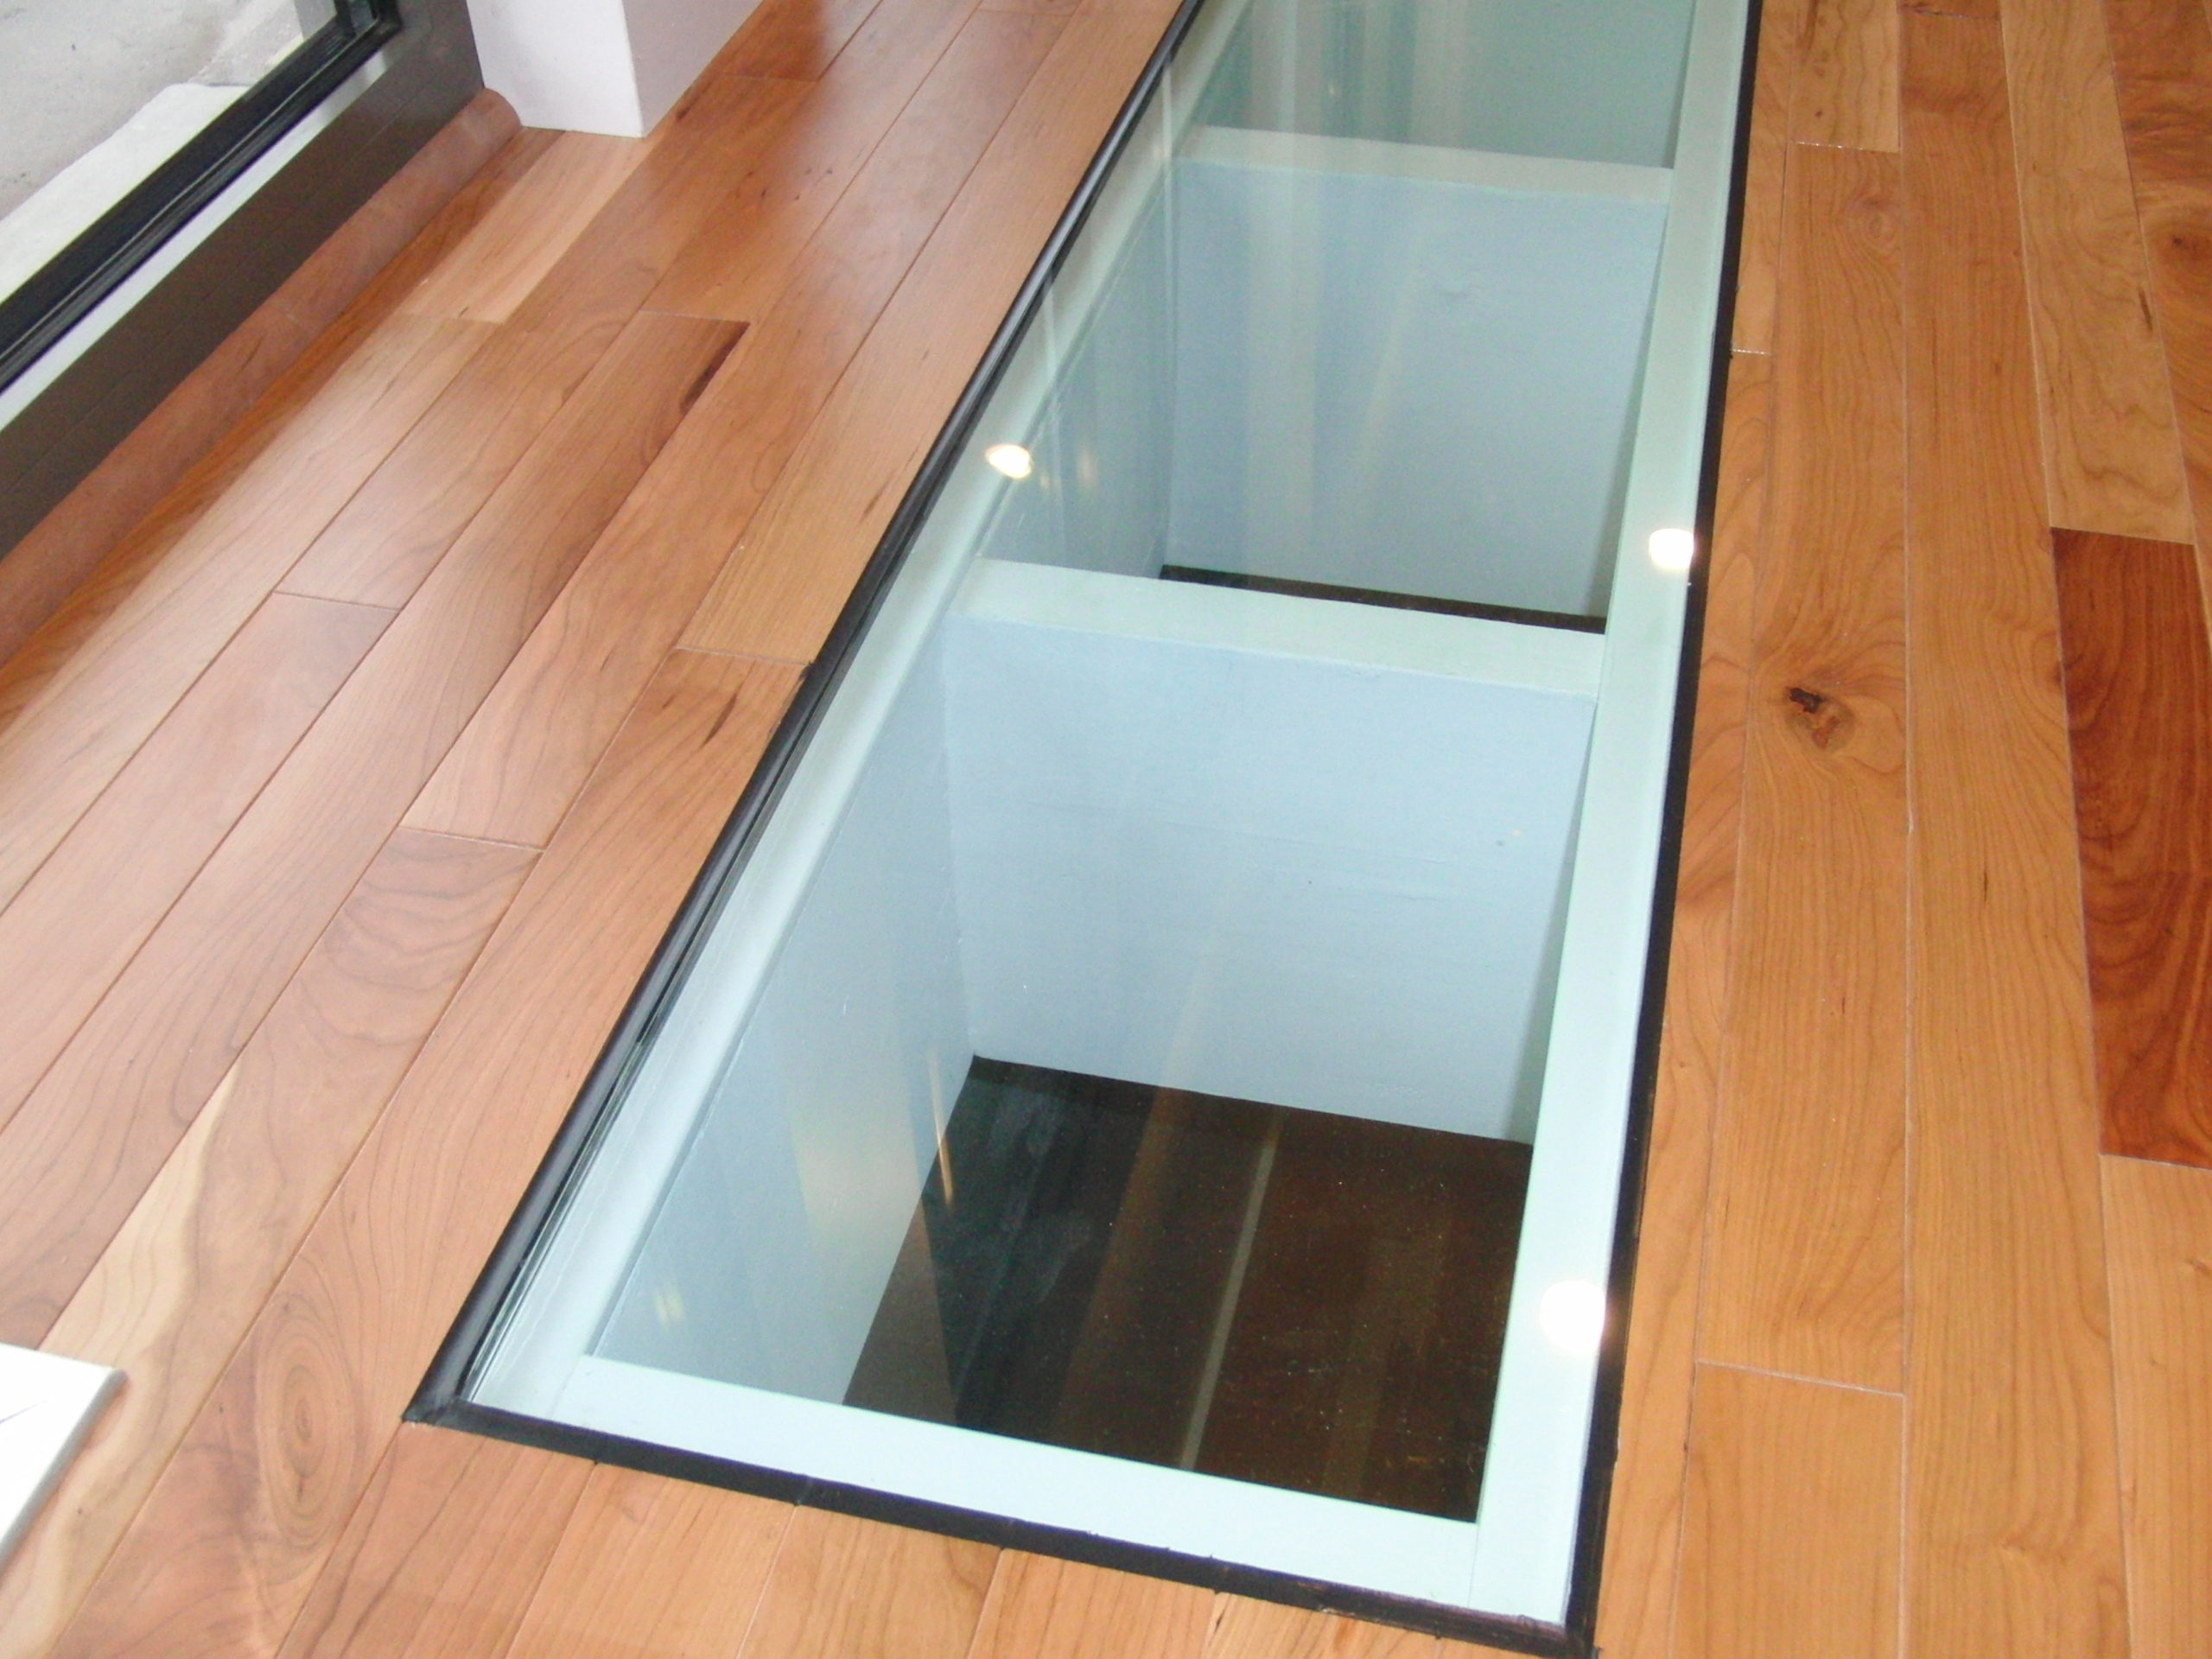 GC Custom Efsratudakis Glass Floor 3 scaled